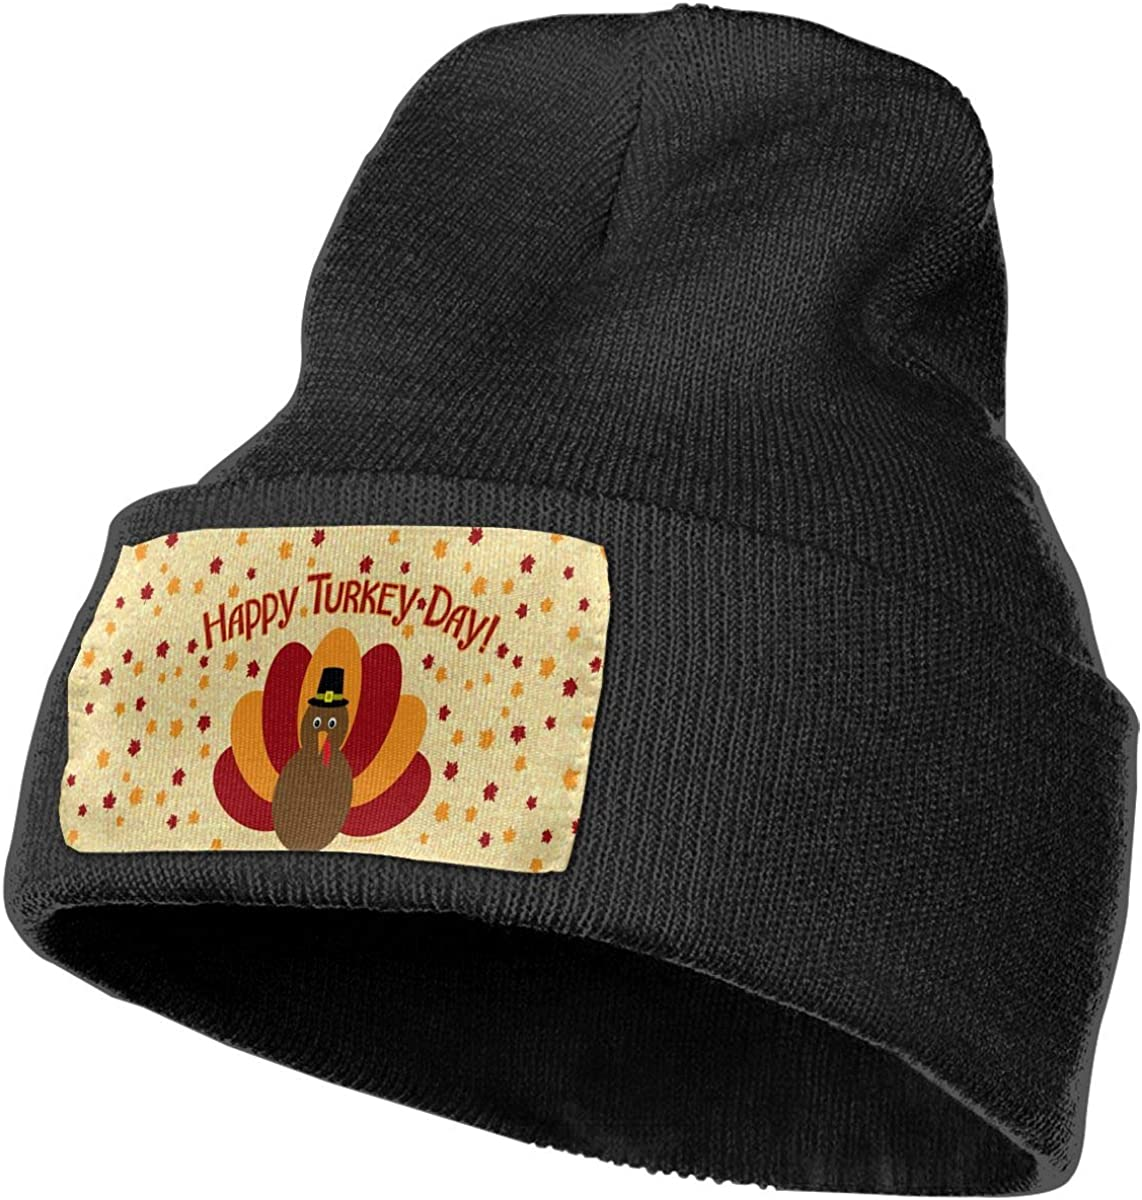 JimHappy Happy Turkey Day Hat for Men and Women Winter Warm Hats Knit Slouchy Thick Skull Cap